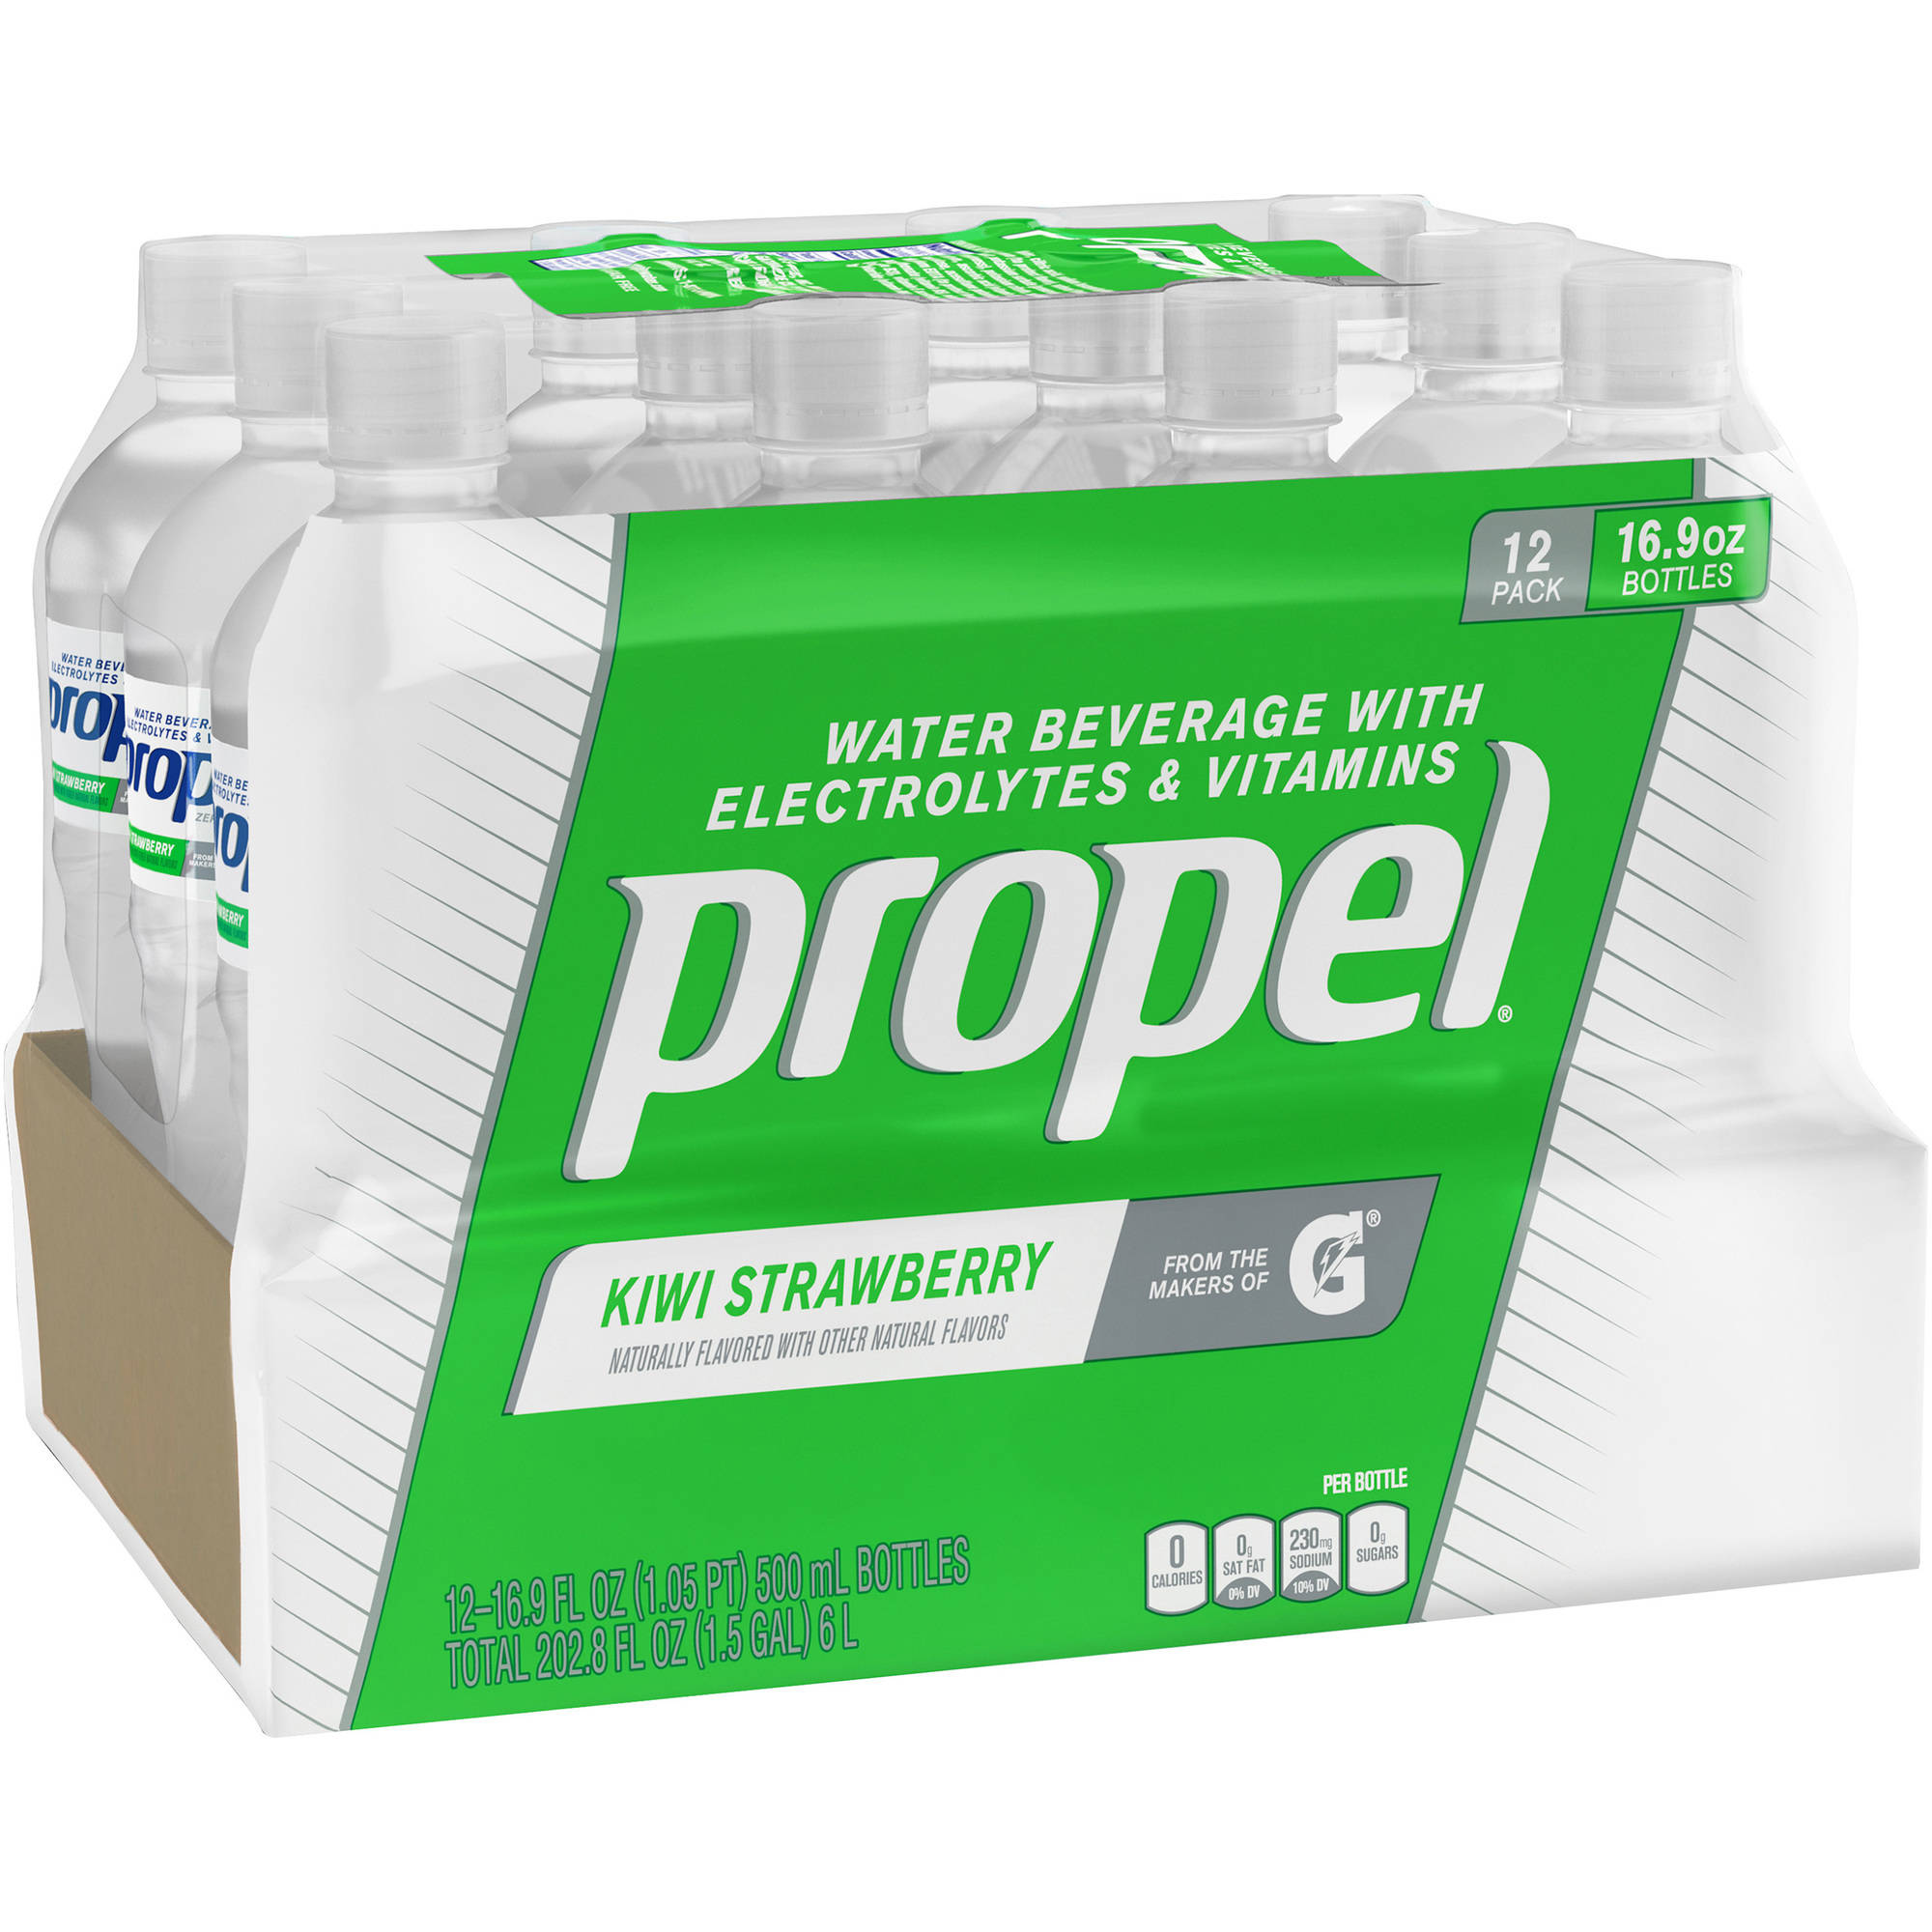 Propel Kiwi Strawberry Water Beverage with Vitamins, 16.9 fl oz, 12 pack